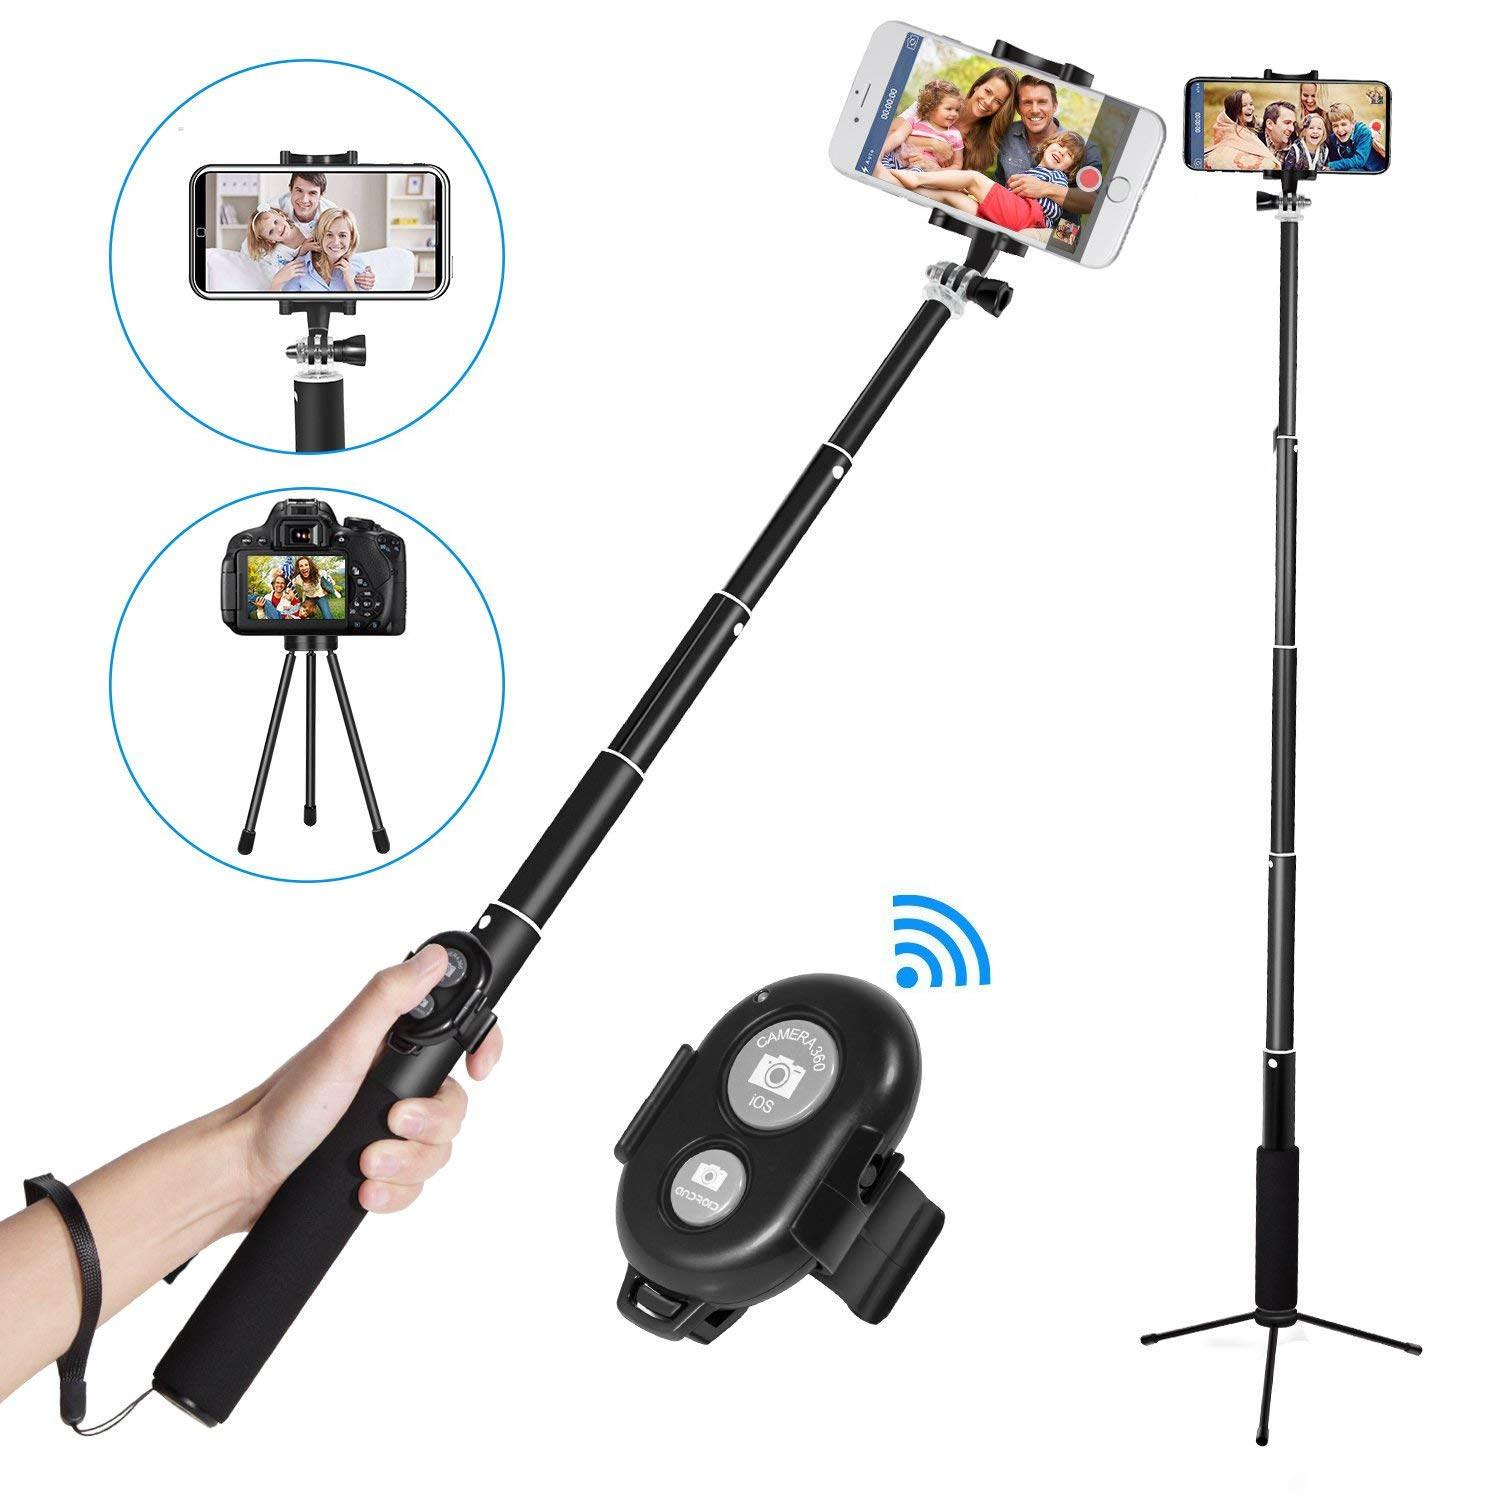 Phone Tripod Selfie Stick For iPhone Android For Samsung Xiaomi Huawei Remote Handheld Bluetooth Foldable Selfie stick led flash fill light selfie stick with rear mirror lighting bluetooth monopod for iphone x 8 samsung huawei xiaomi android phone